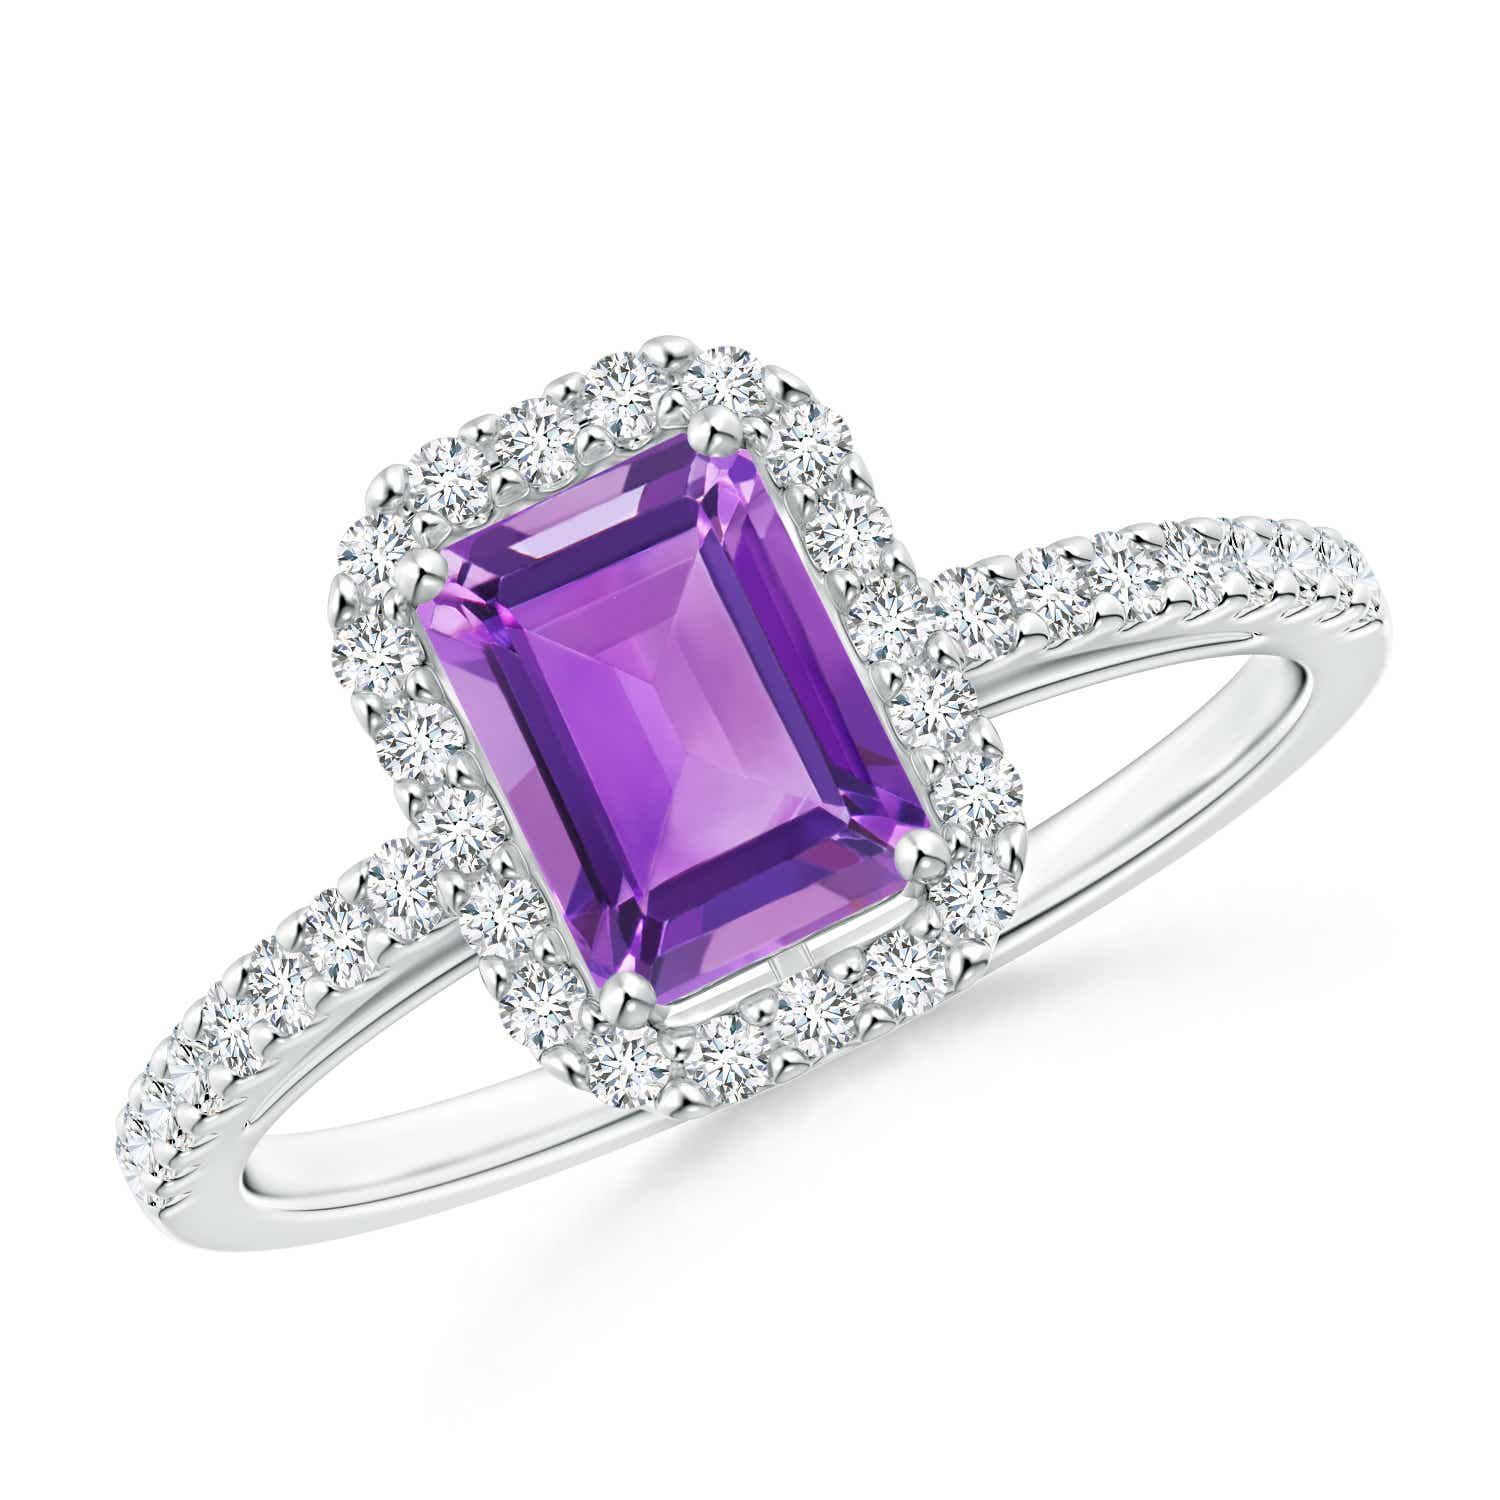 Angara Vintage Amethyst Engagement Ring in Platinum